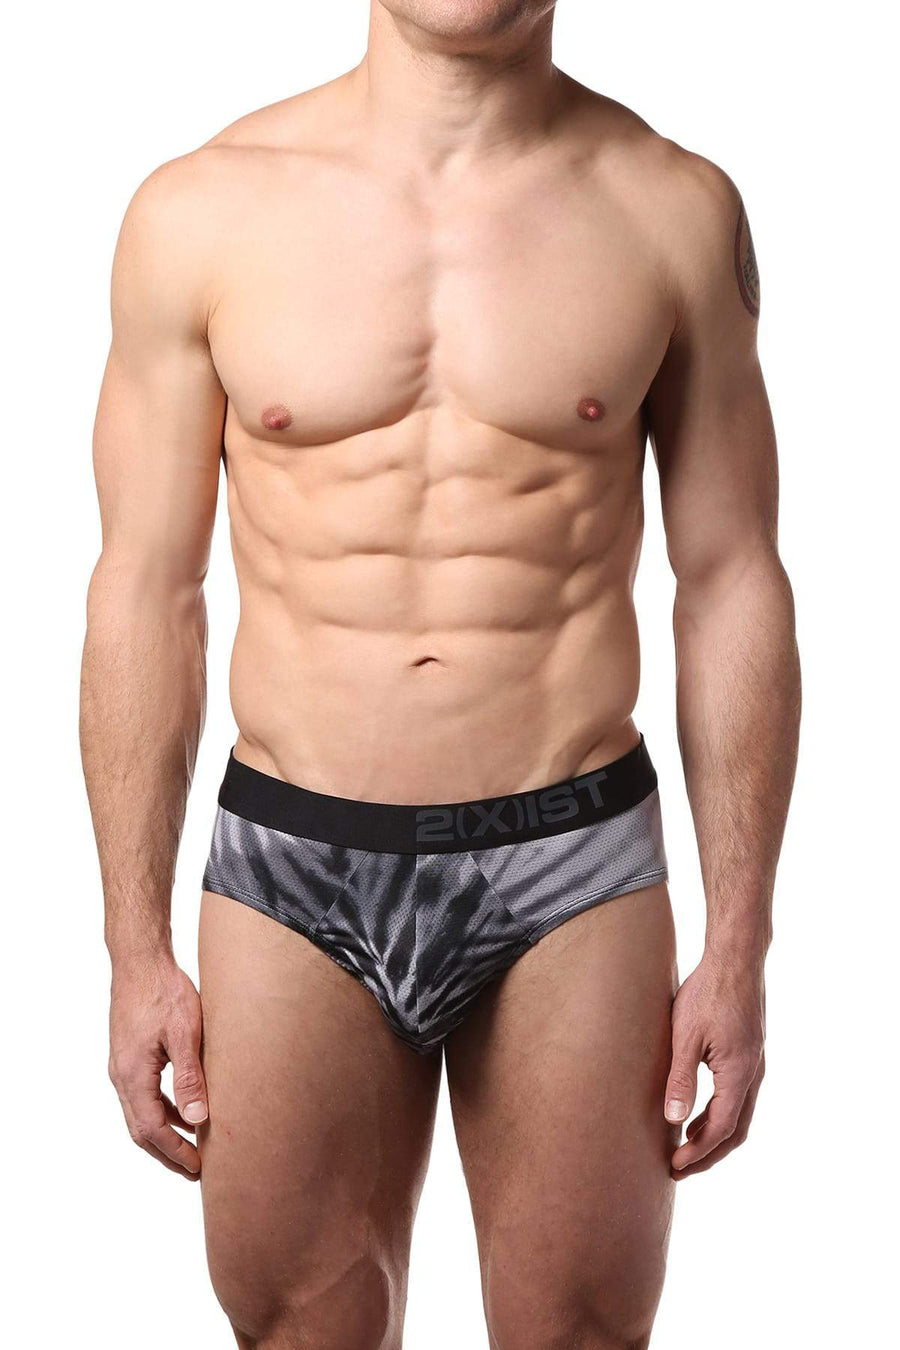 Briefs - 2(X)IST Black Graphic Sliq Micro Mesh Brief -   jetcube